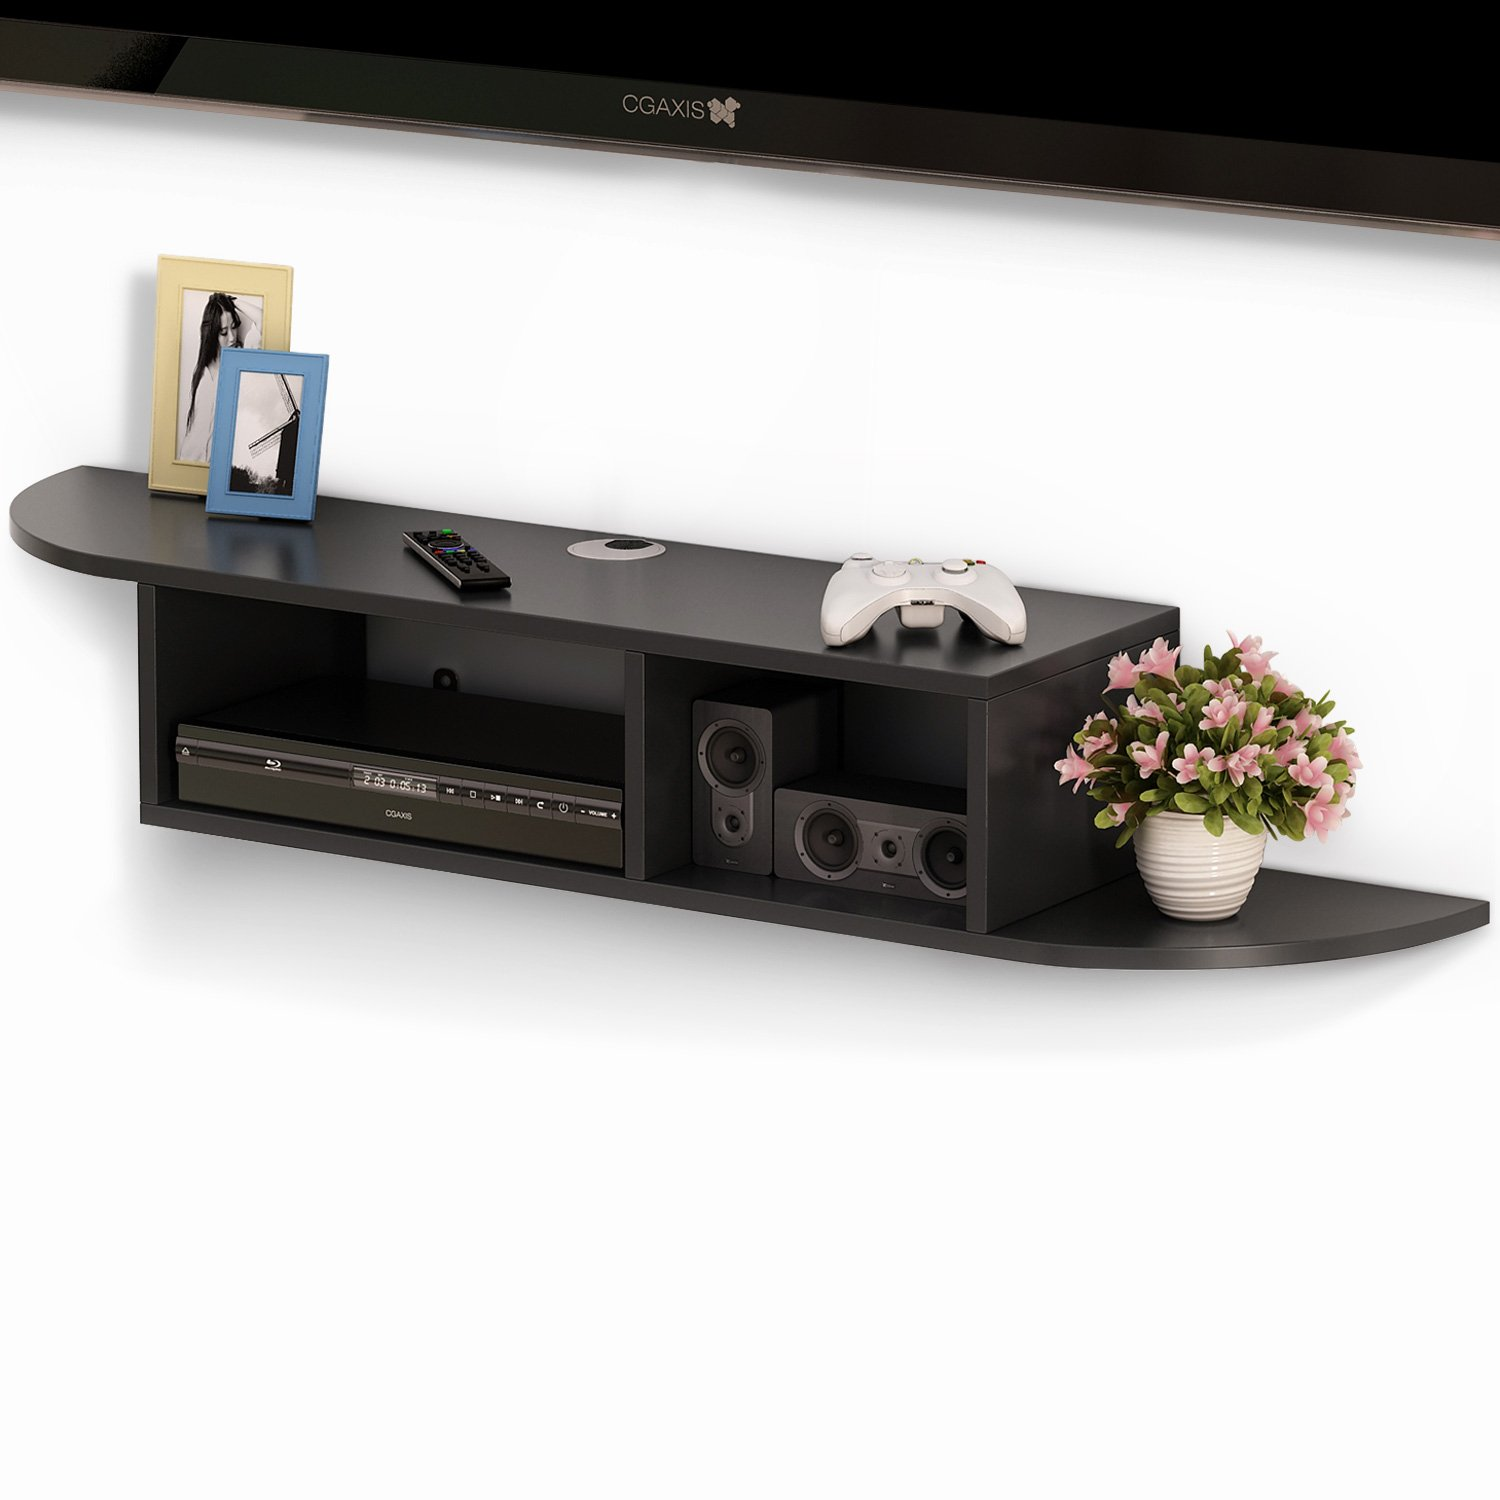 Tribesigns 2 Tier Modern Wall Mount Floating Shelf TV Console 43.3x9.4x7 inch for Cable Boxes/Routers/ Remotes/DVD Players/Game Consoles (black)